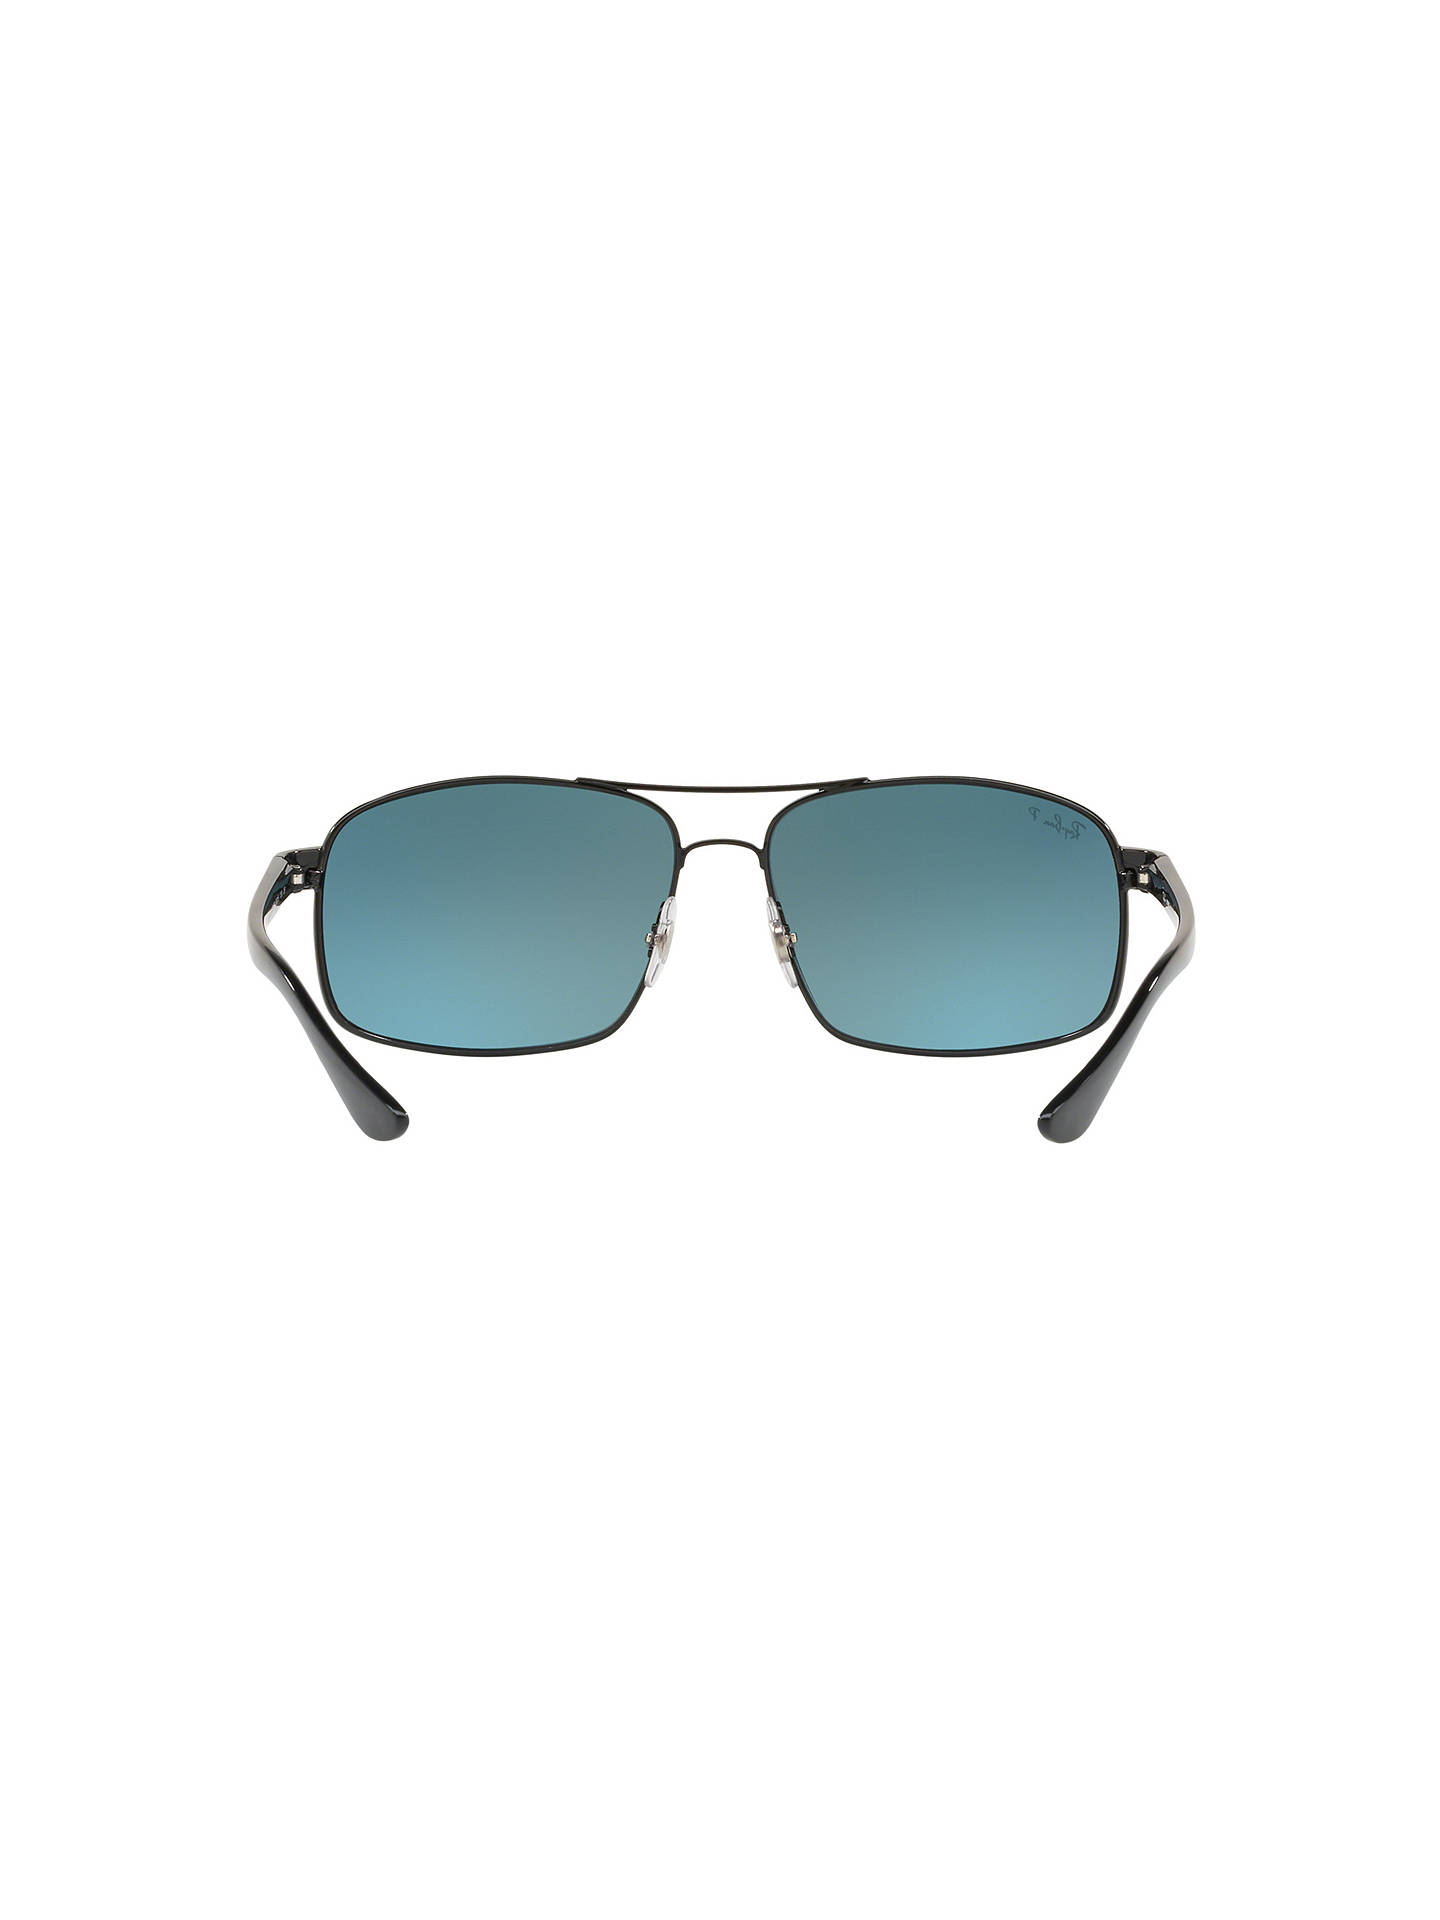 Buy Ray-Ban RB3604 Men's Square Sunglasses, Black Online at johnlewis.com